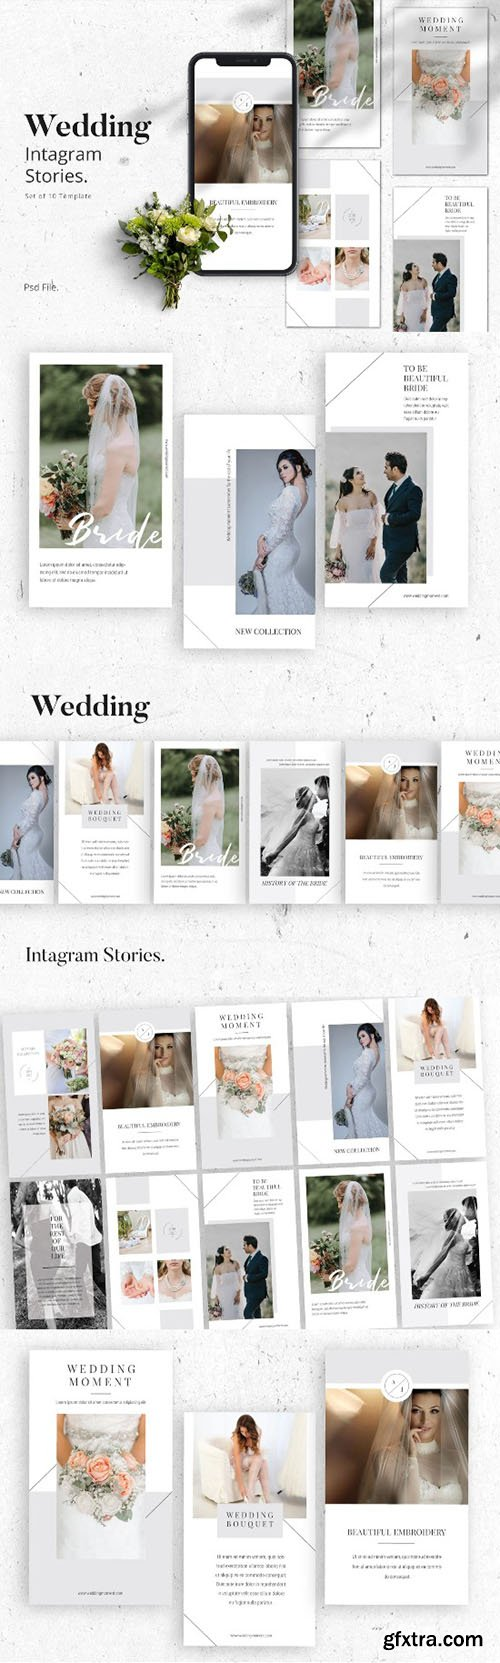 Wedding Moment Instagram Stories Template